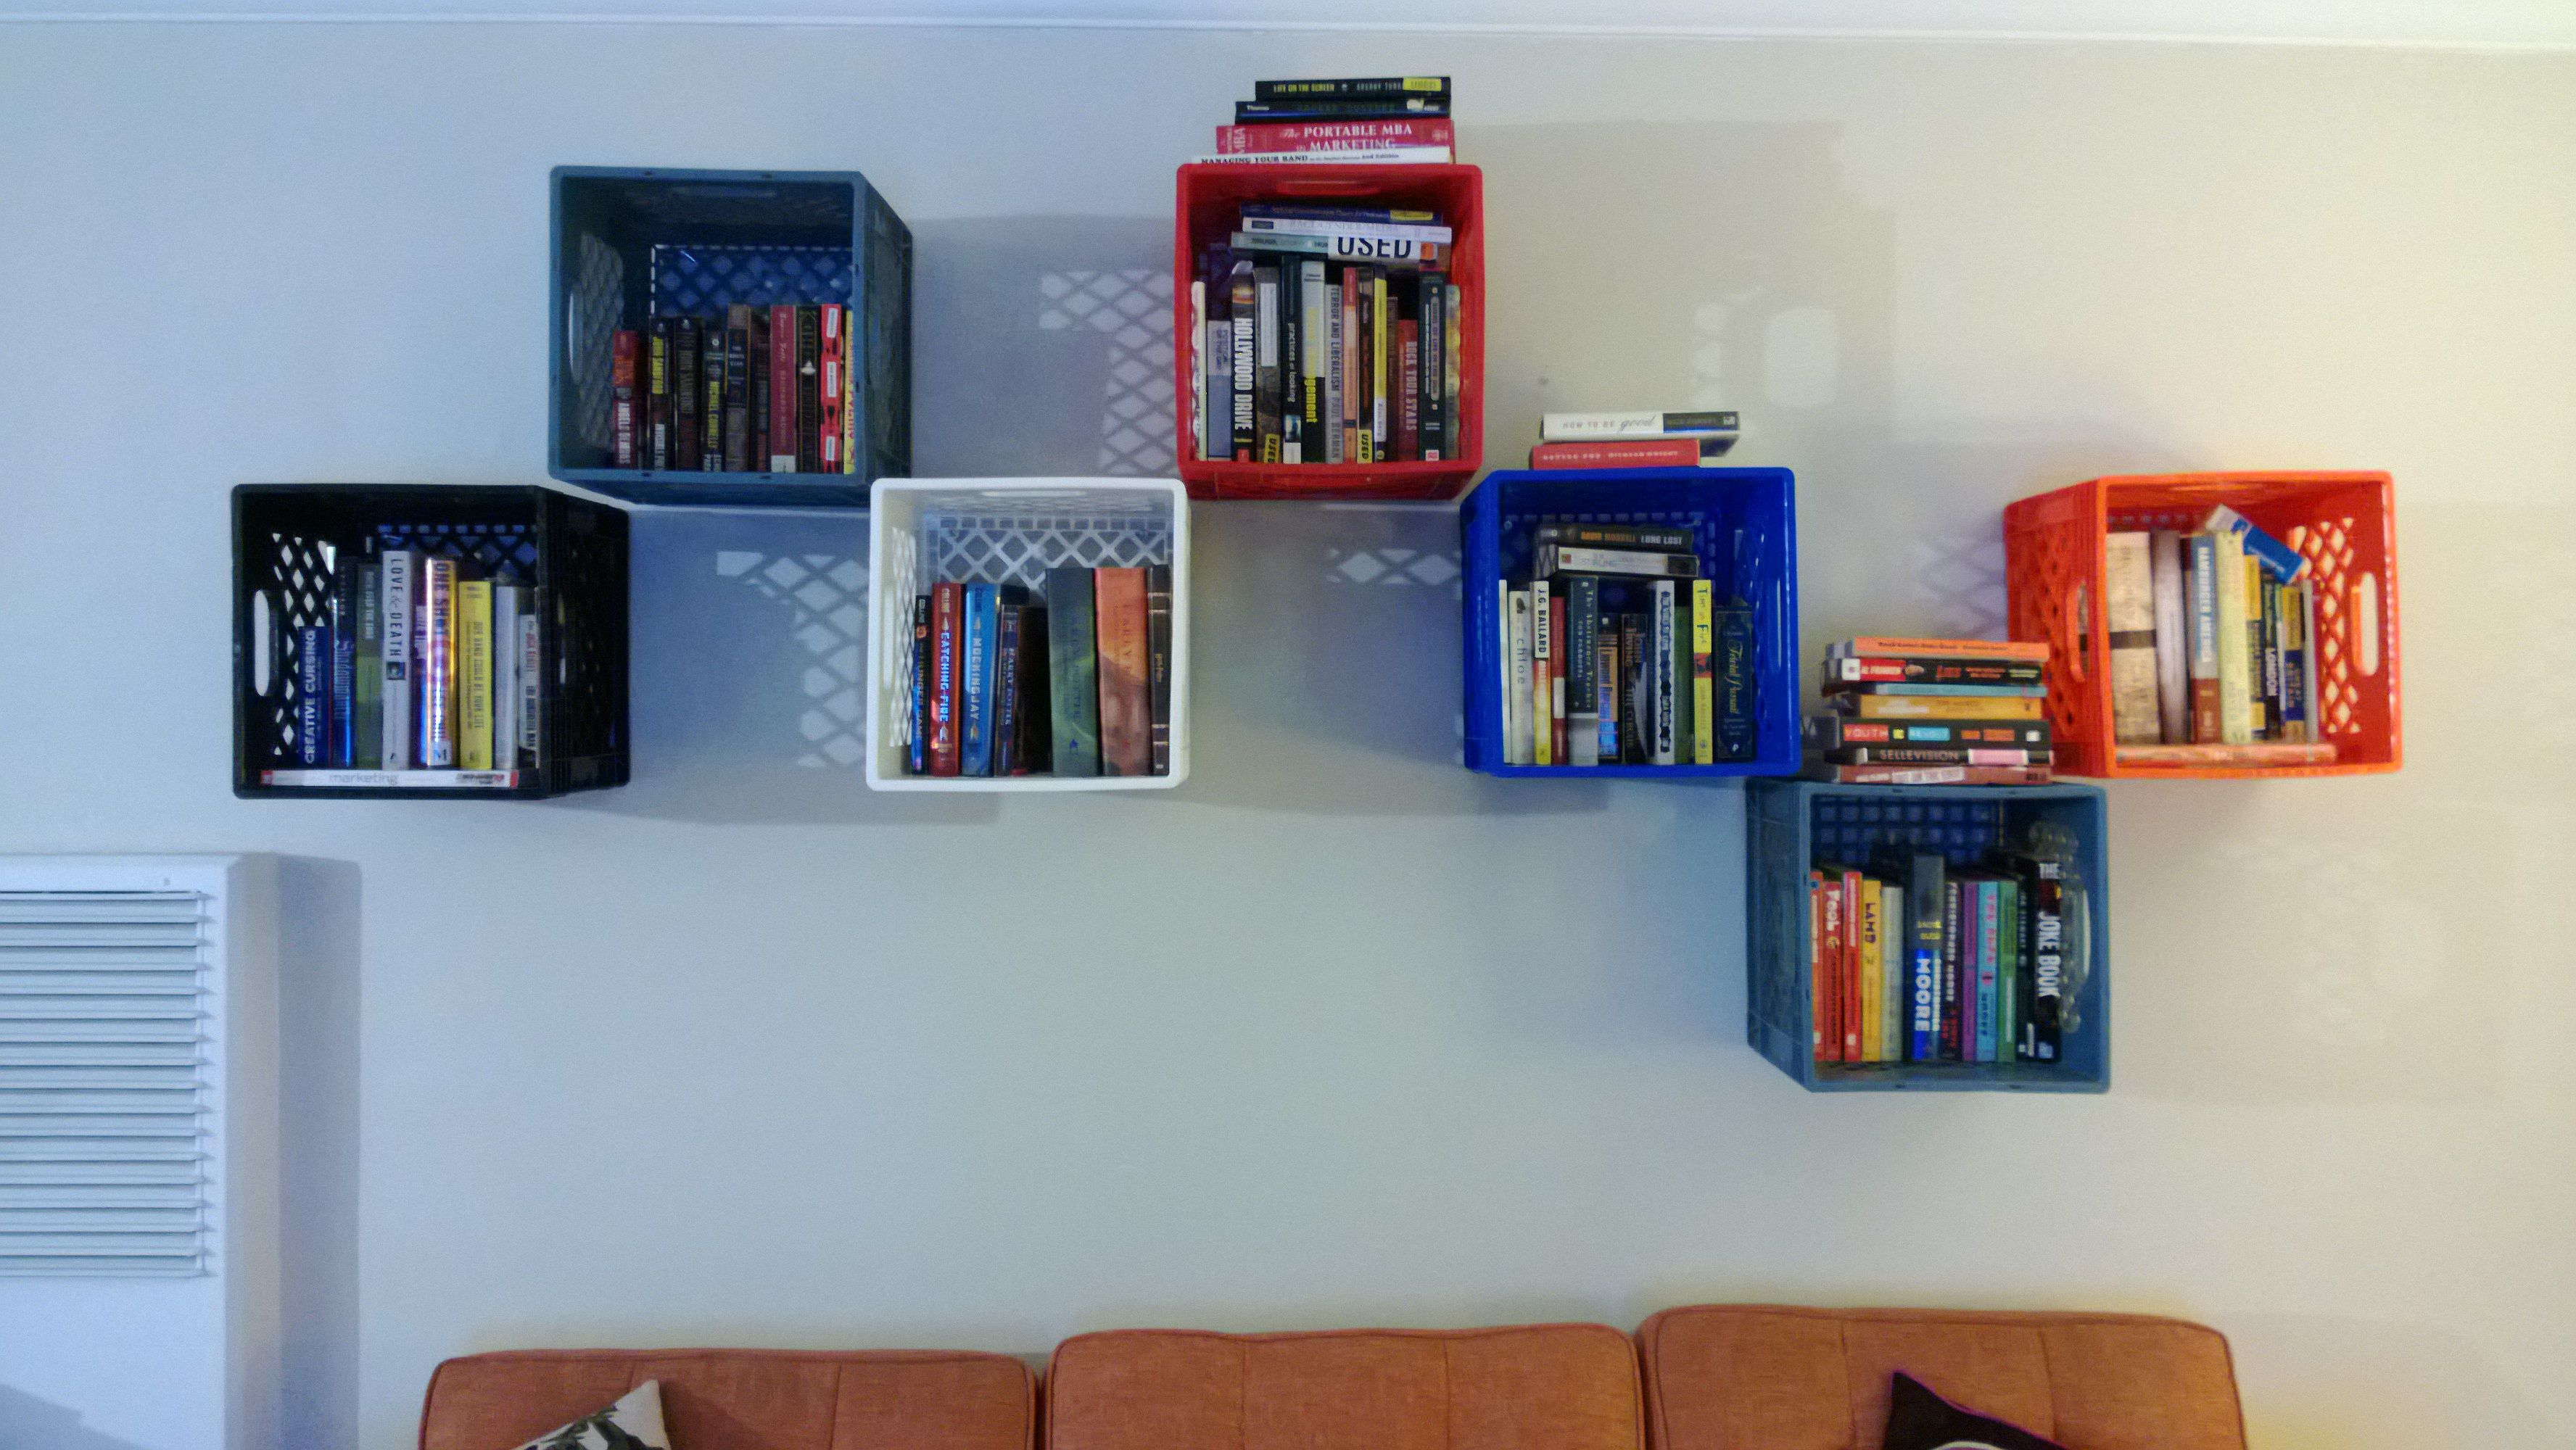 Milk Crate Bookshelf Built With New And Used Milk Crates Told It Is The Ultimate Hipster Bookcase Crate Shelves Milk Crate Shelves Milk Crates Diy